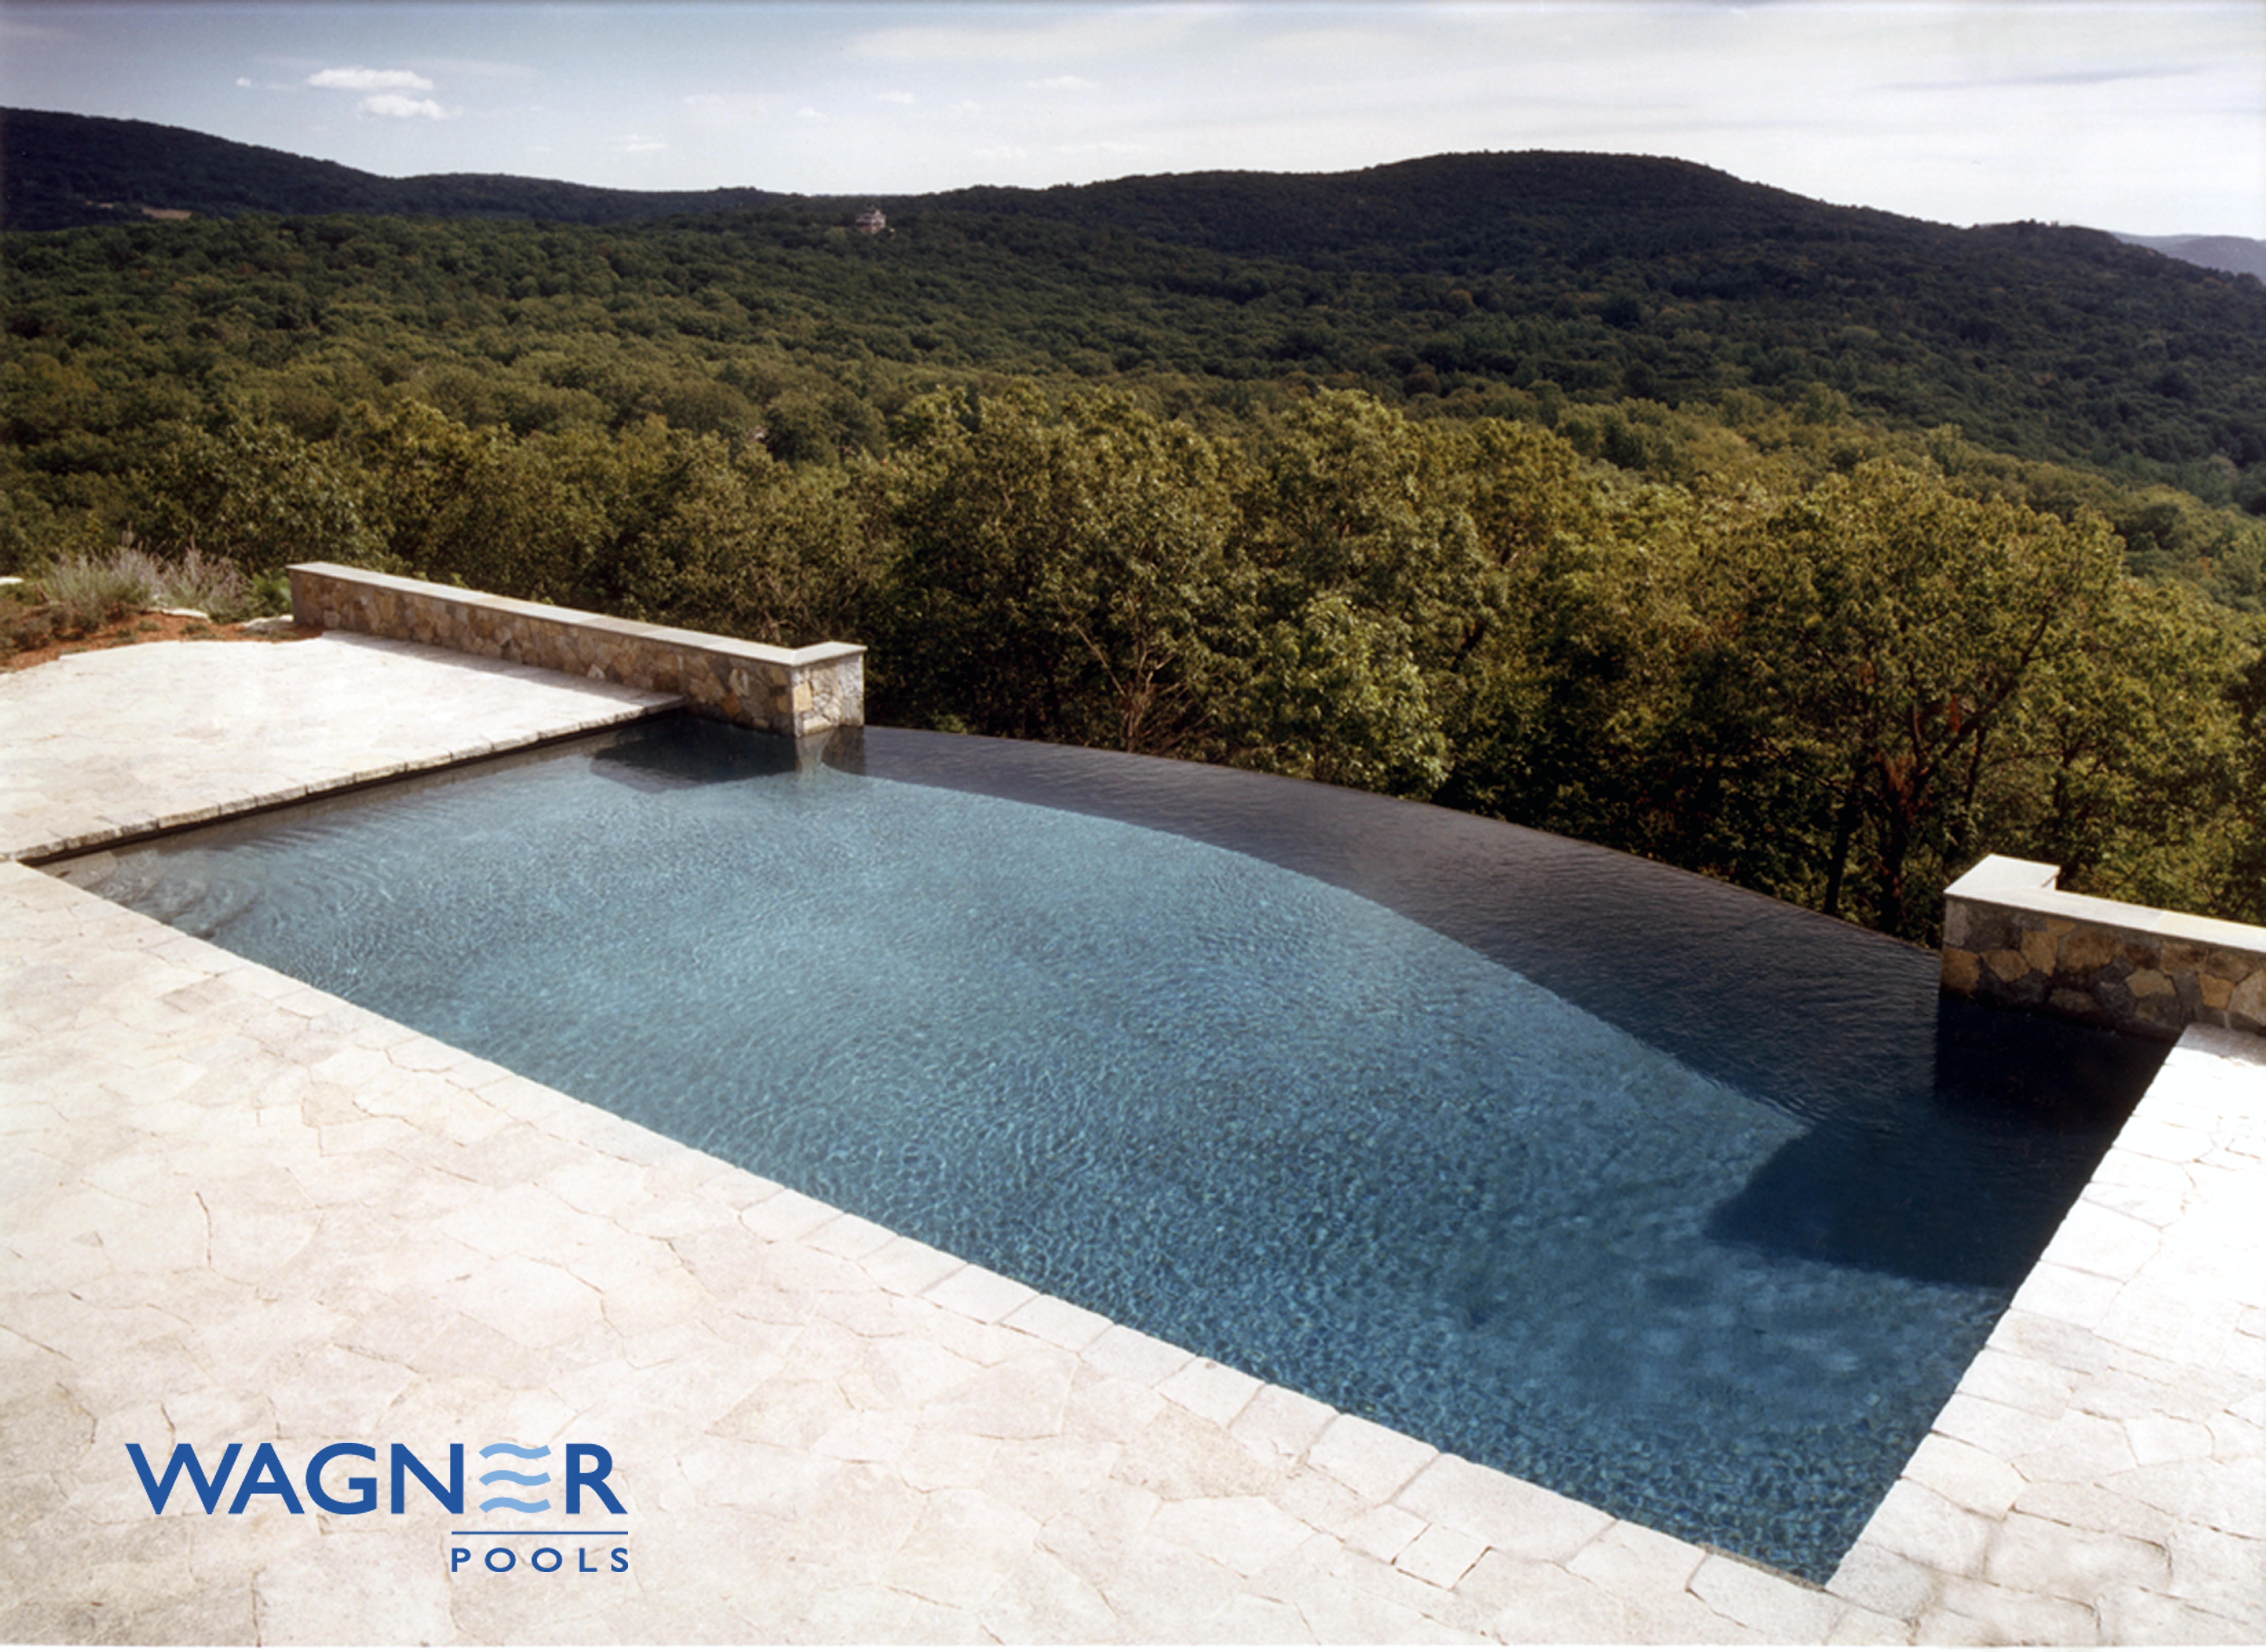 Wagner Pools image 4